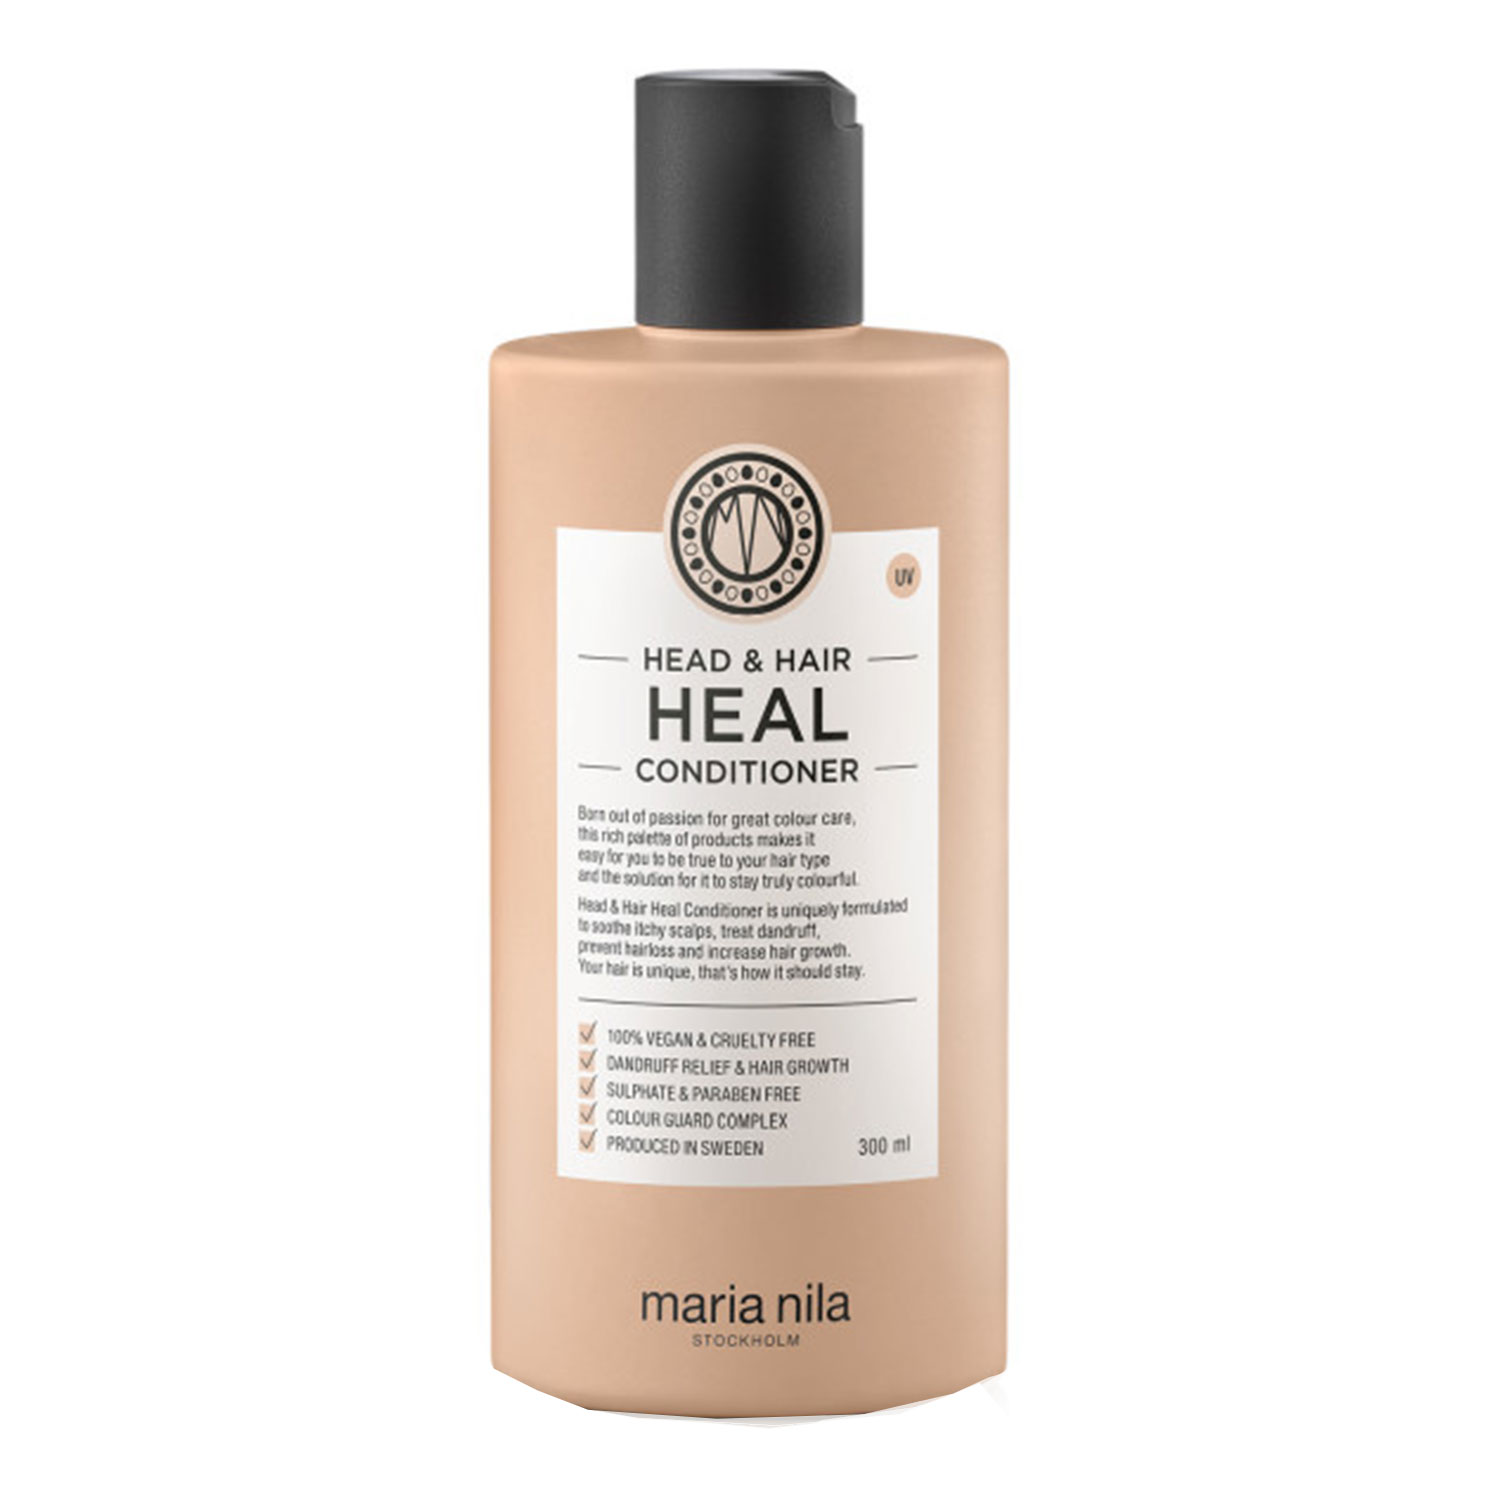 Care & Style - Head & Hair Heal Conditioner